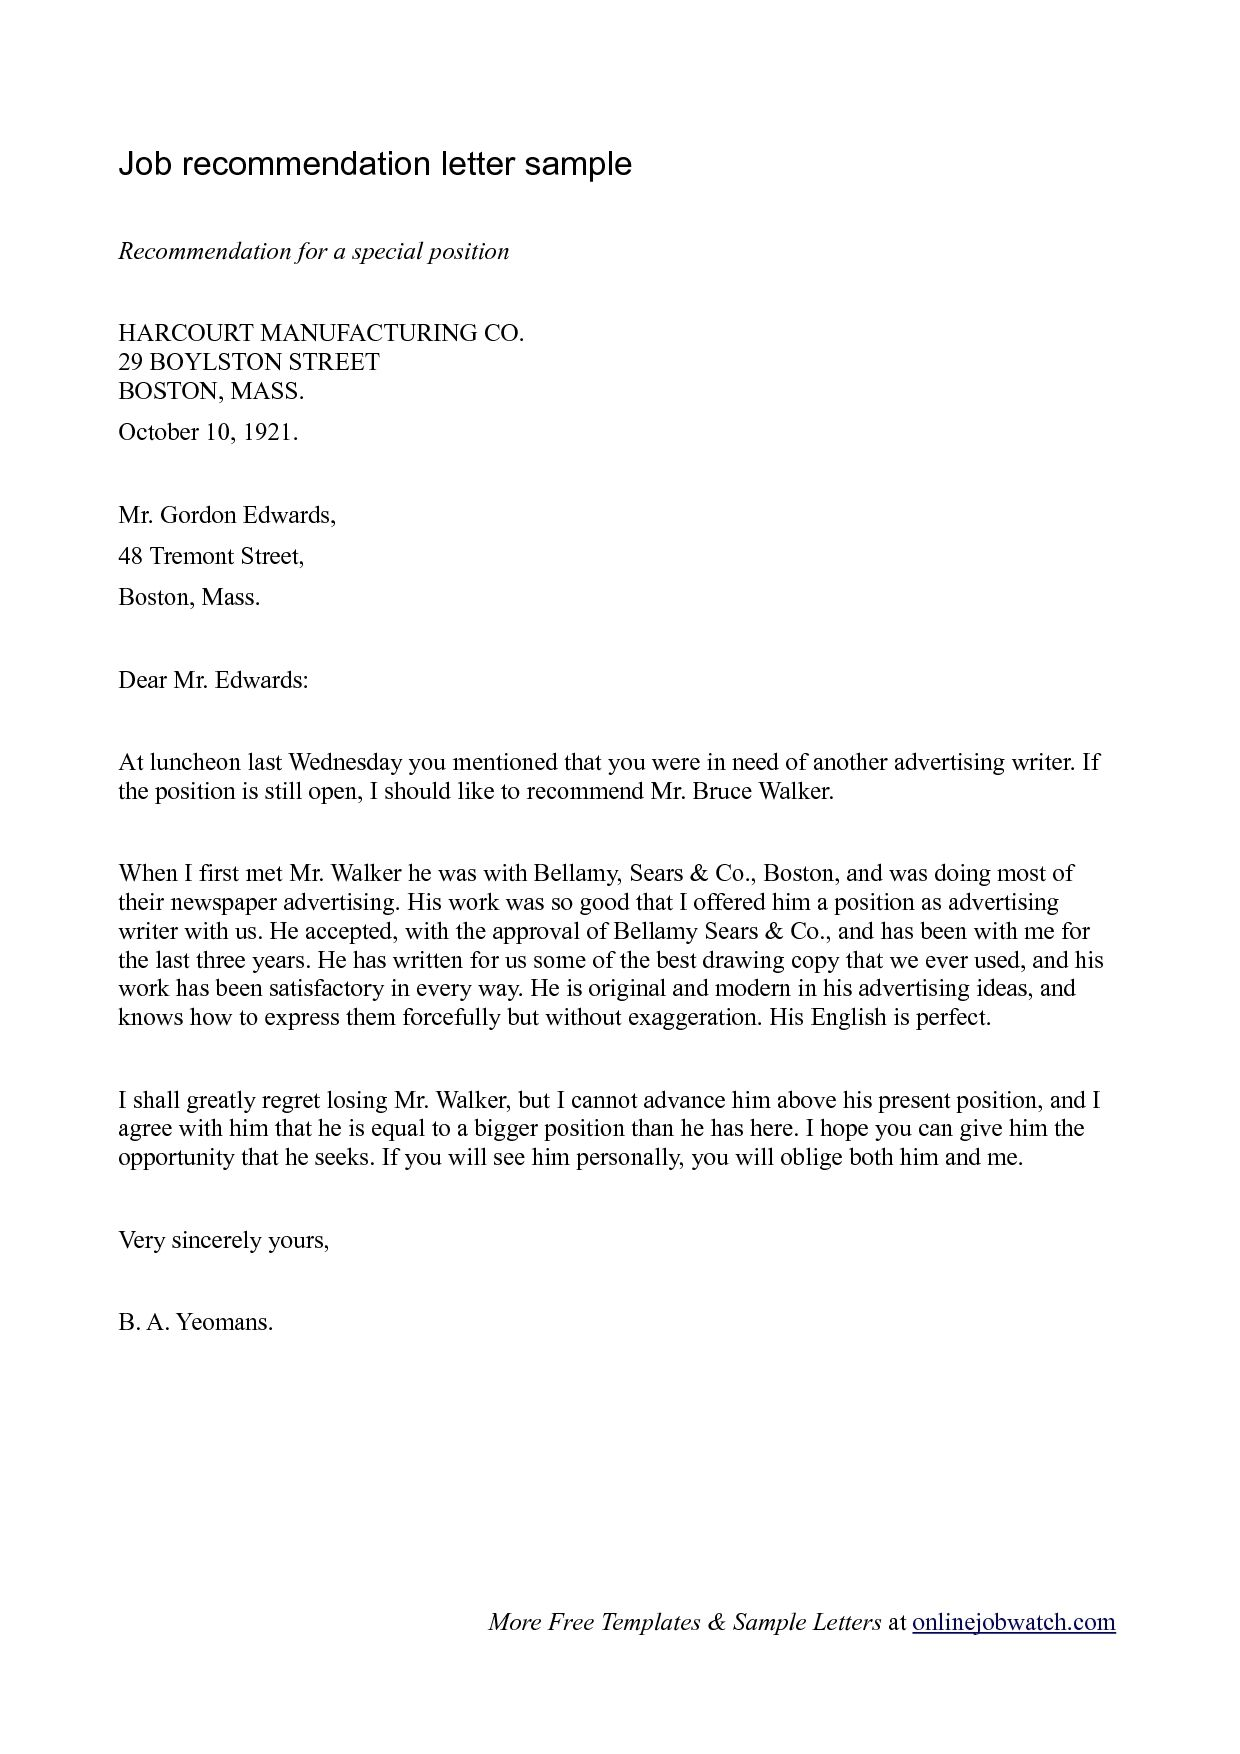 How To Write A Testimonial Letter For A Person - arxiusarquitectura